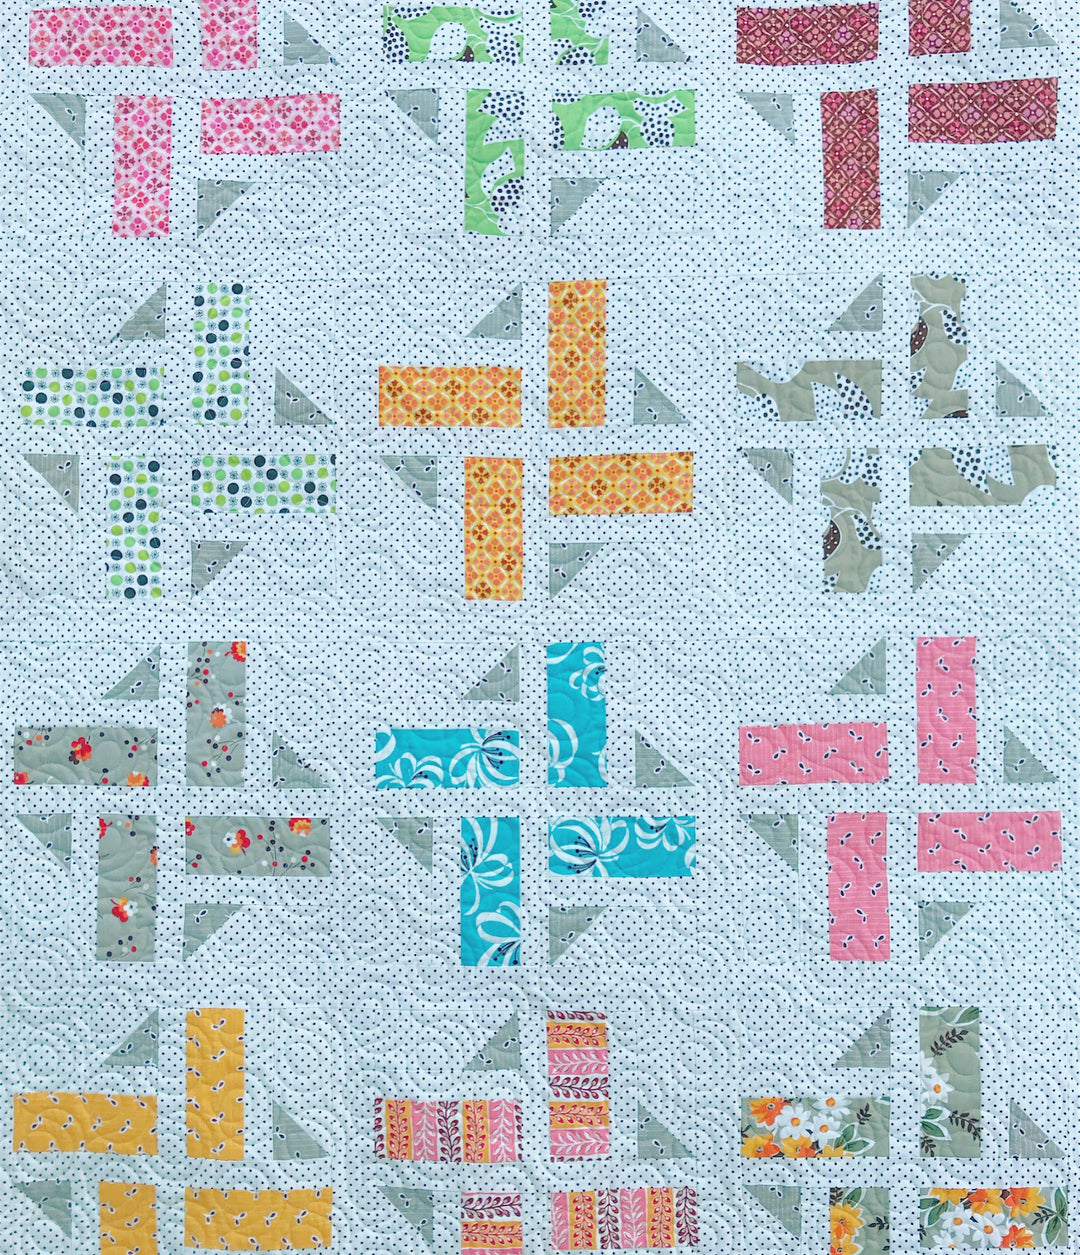 Division quilt by Maker Valley. Quilt pattern by A Bright Corner (aka Andy Knowlton)